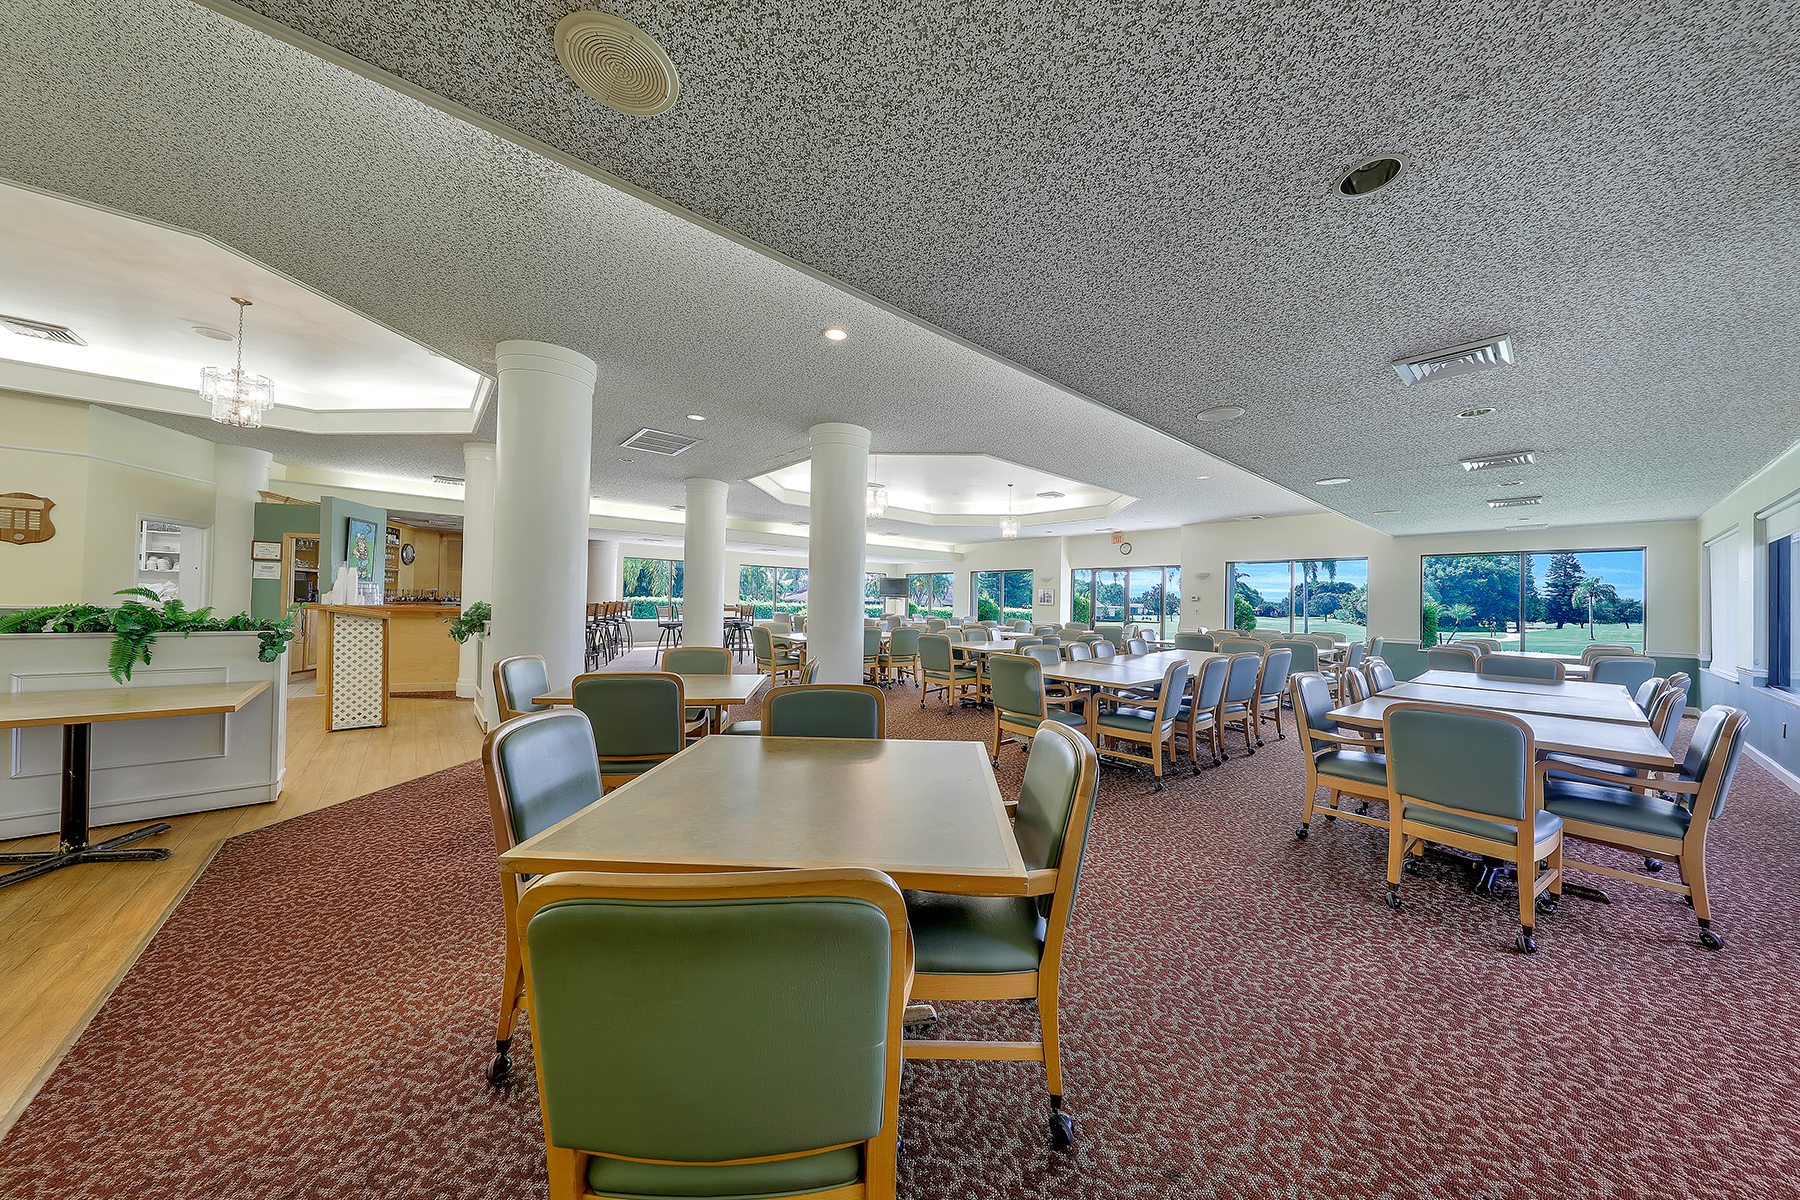 Additional photo for property listing at LAKEWOOD - LAKEWOOD COUNTRY CLUB 4235  Lakewood Blvd,  Naples, Florida 34112 United States